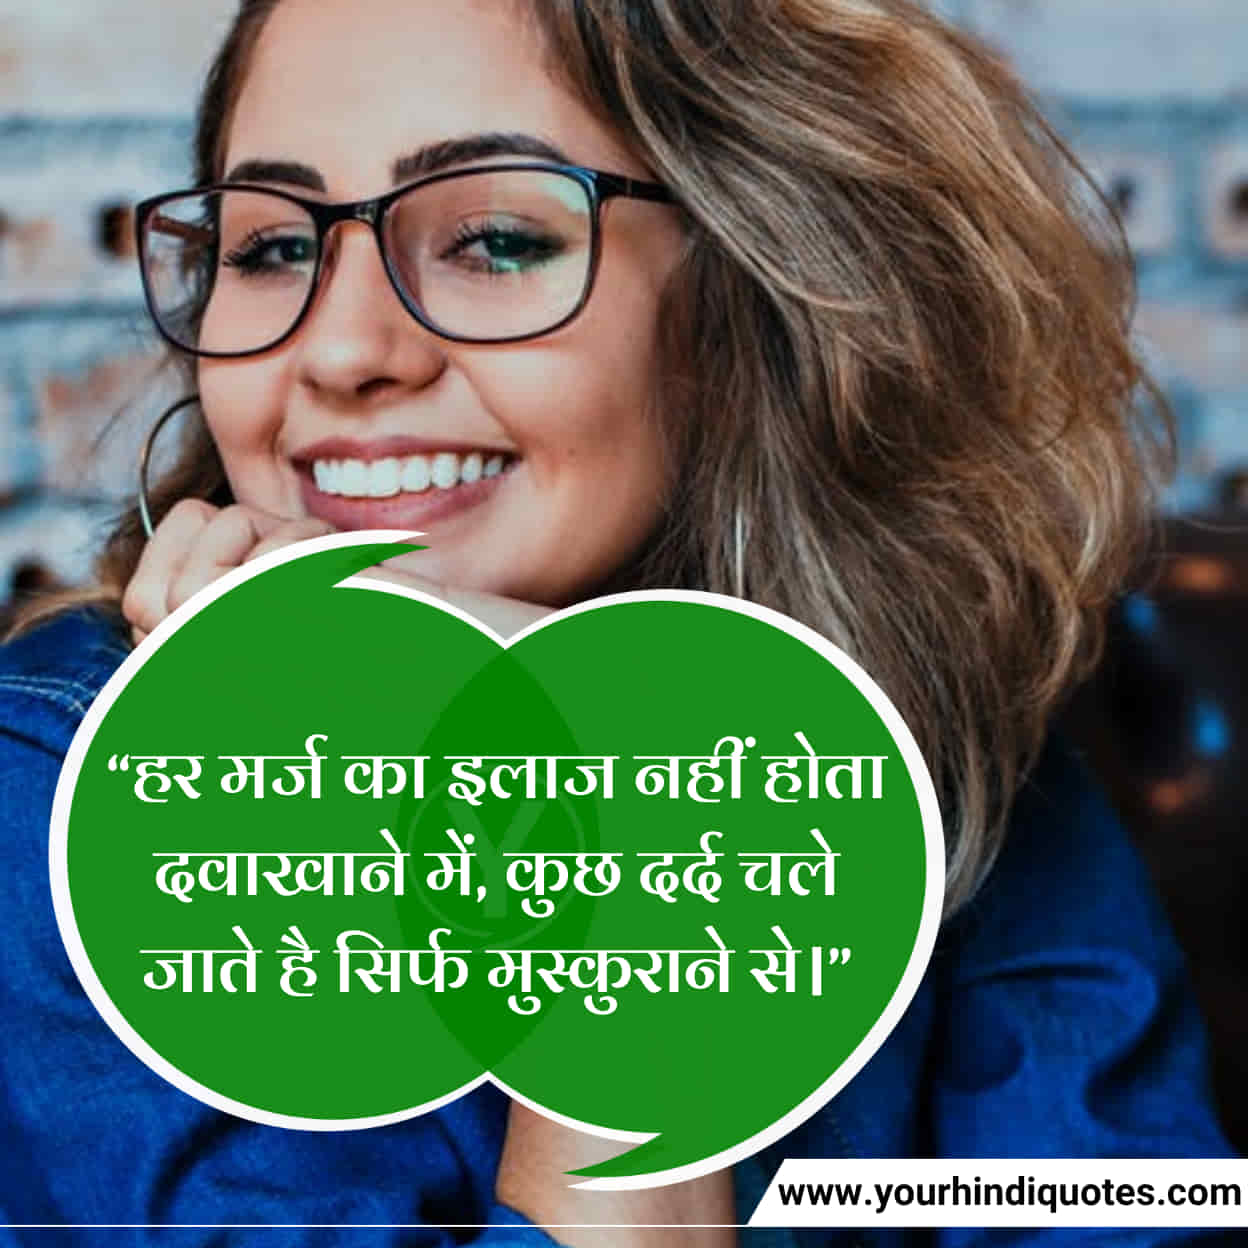 Best Khushi Smile Quotes In Hindi